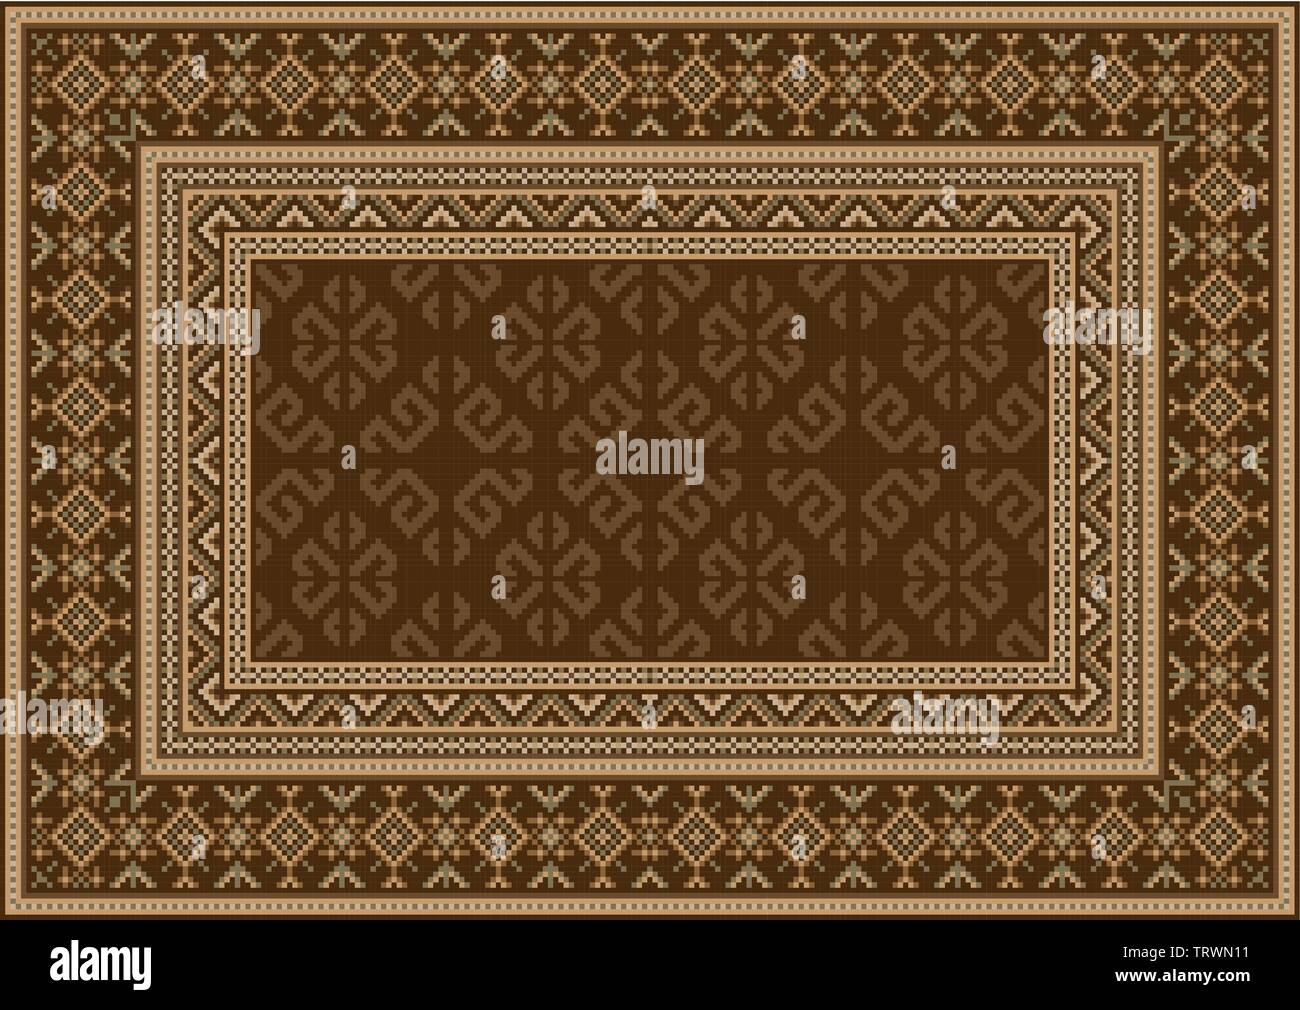 Luxury vintage oriental carpet in brown shades with patterns of beige, dirty green and yellowish colors - Stock Image